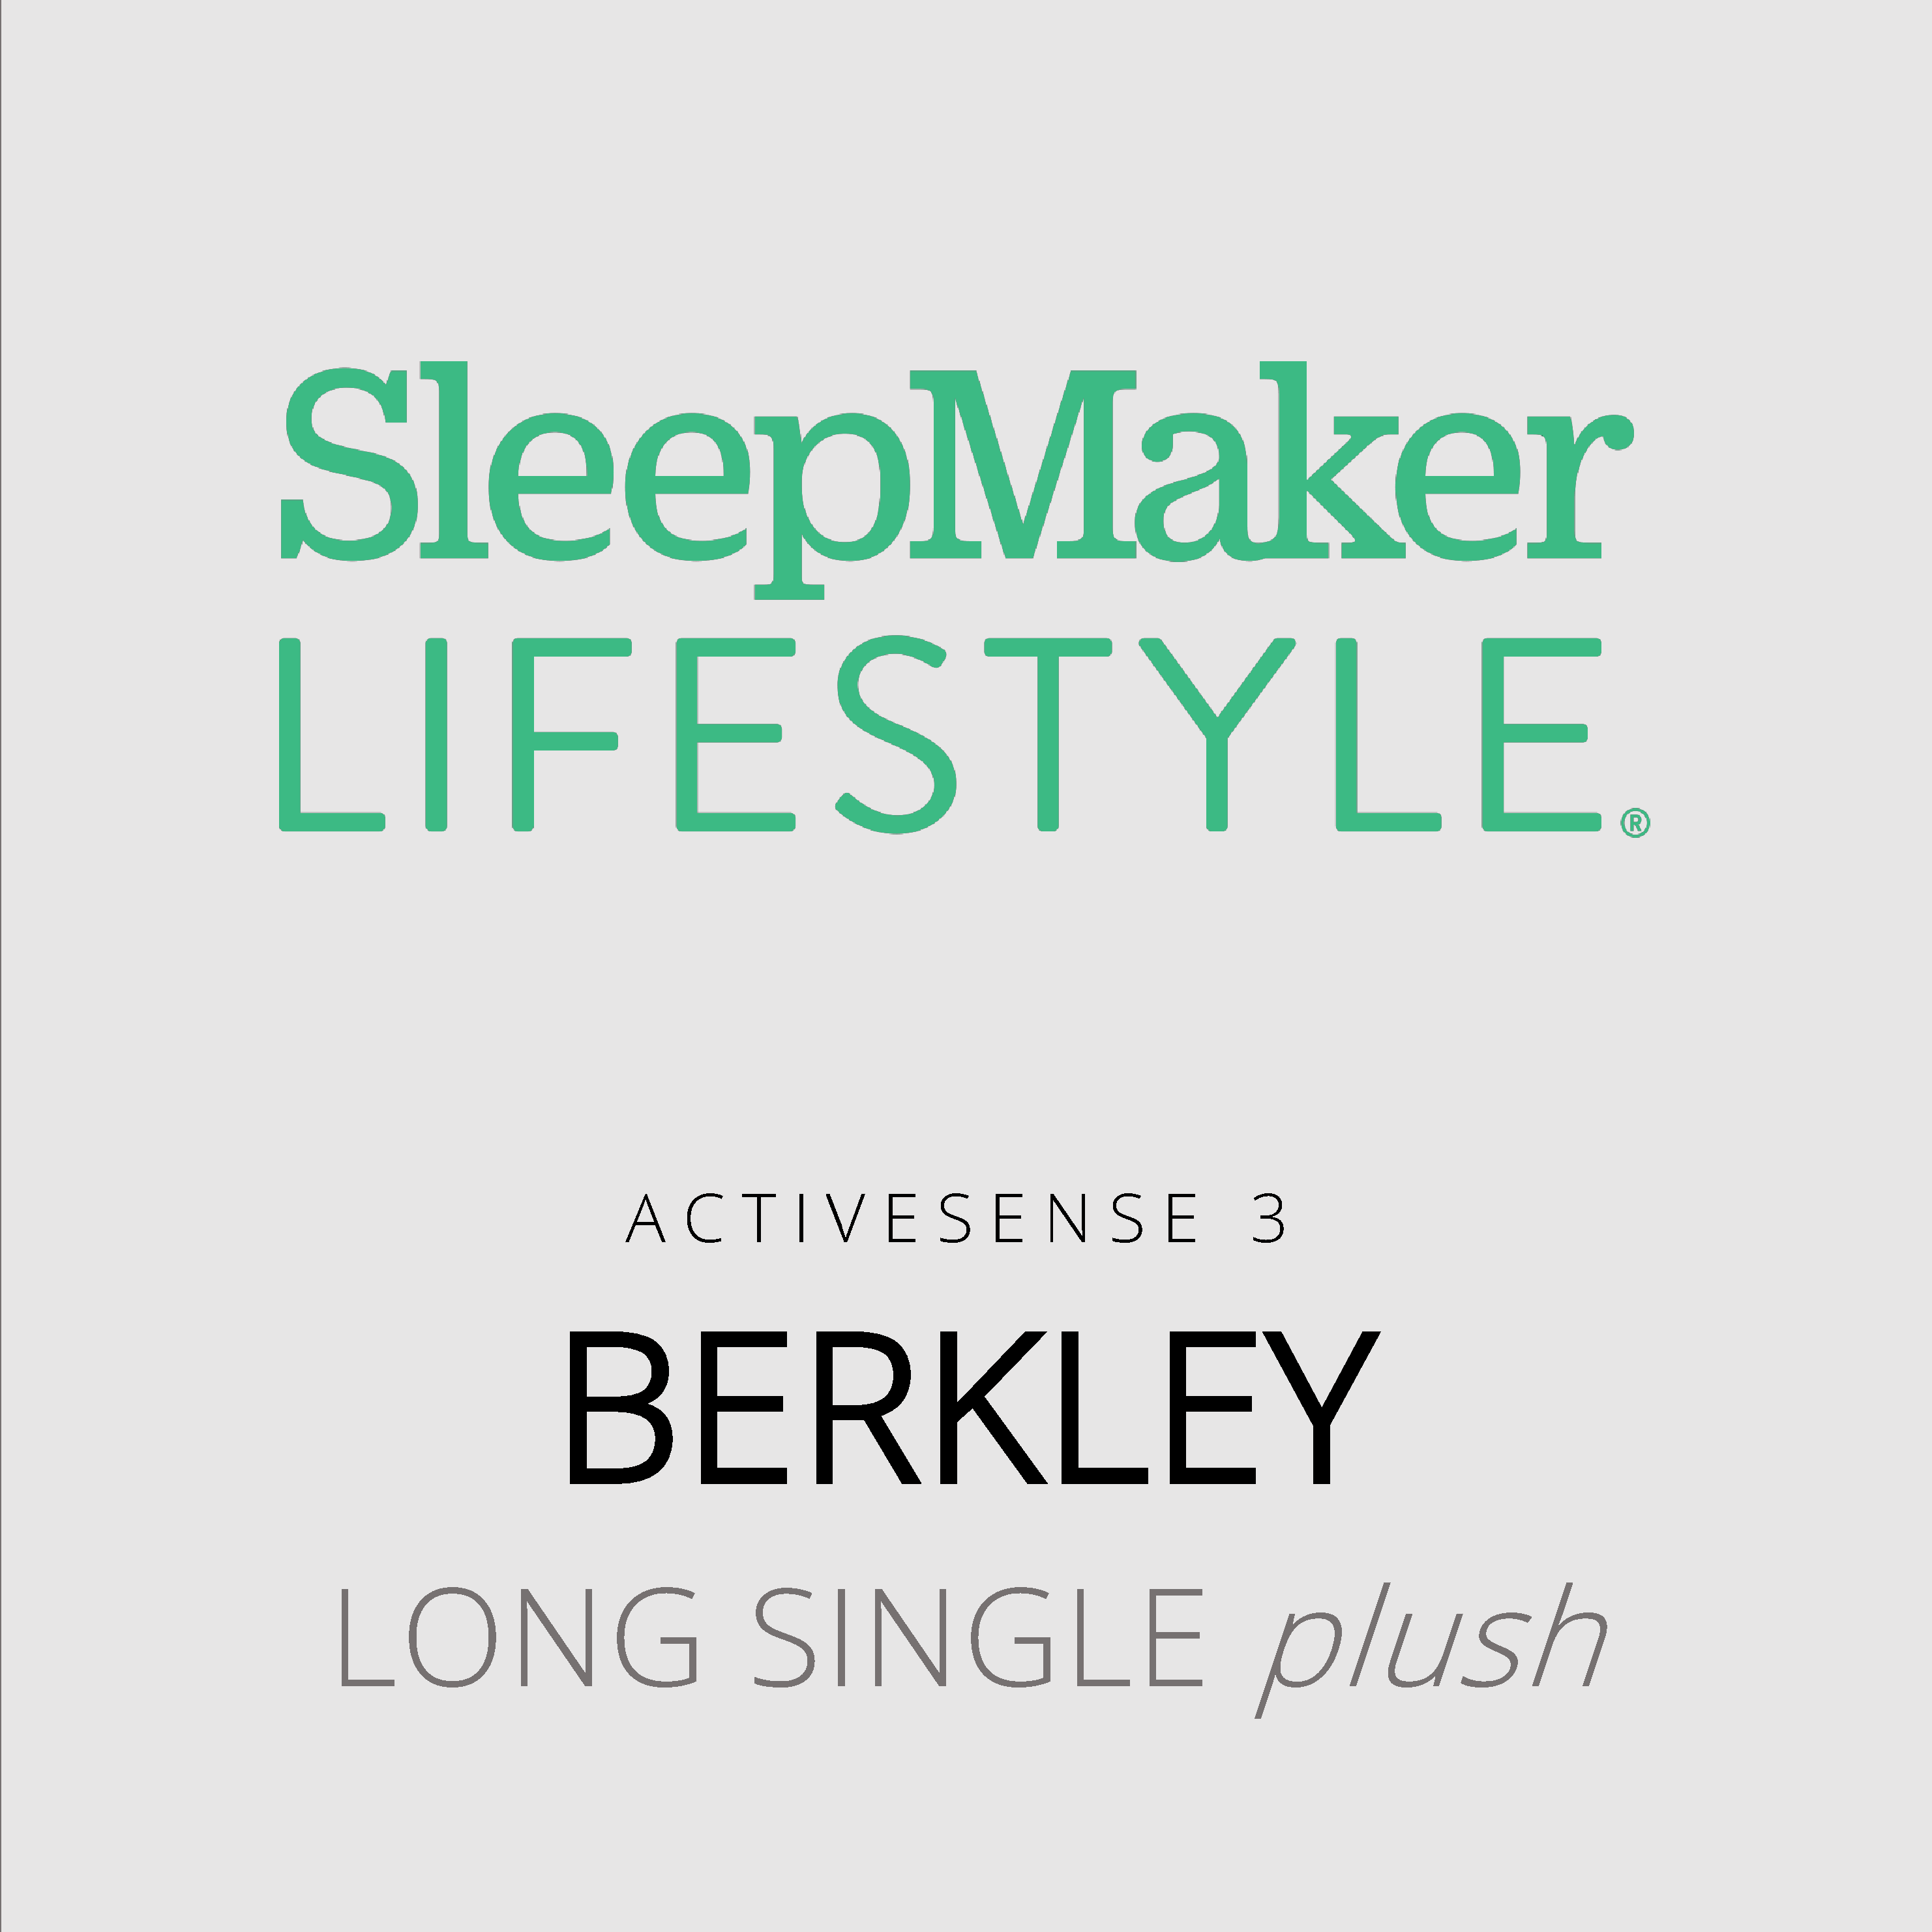 SleepMaker Lifestyle – Berkley – ActiveSense 3 – Long Single Plush Mattress